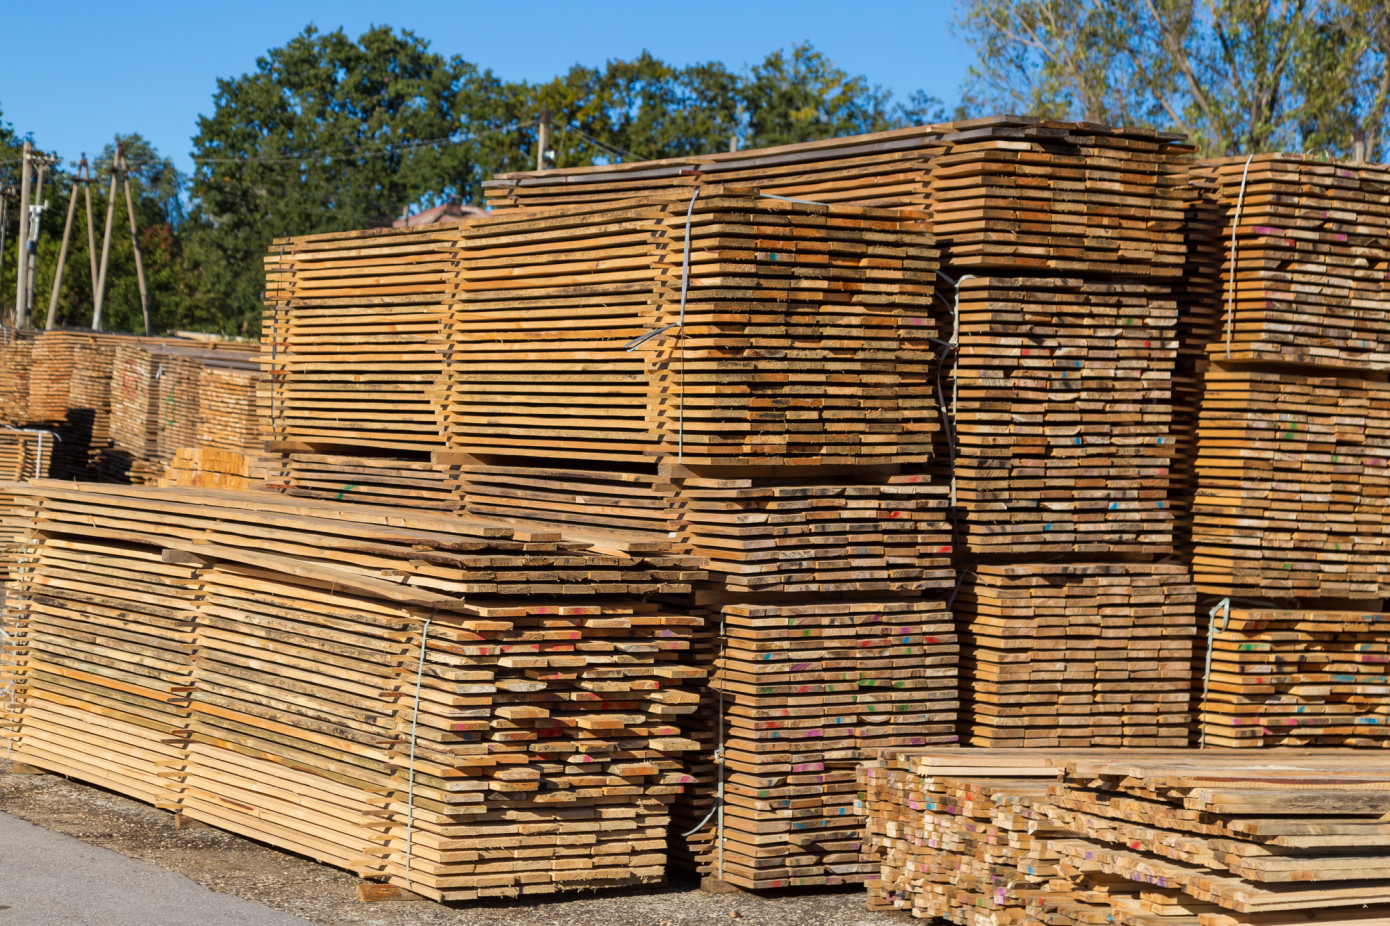 In January-September 2021, the volume of lumber exports from Russia to China decreased by 18%